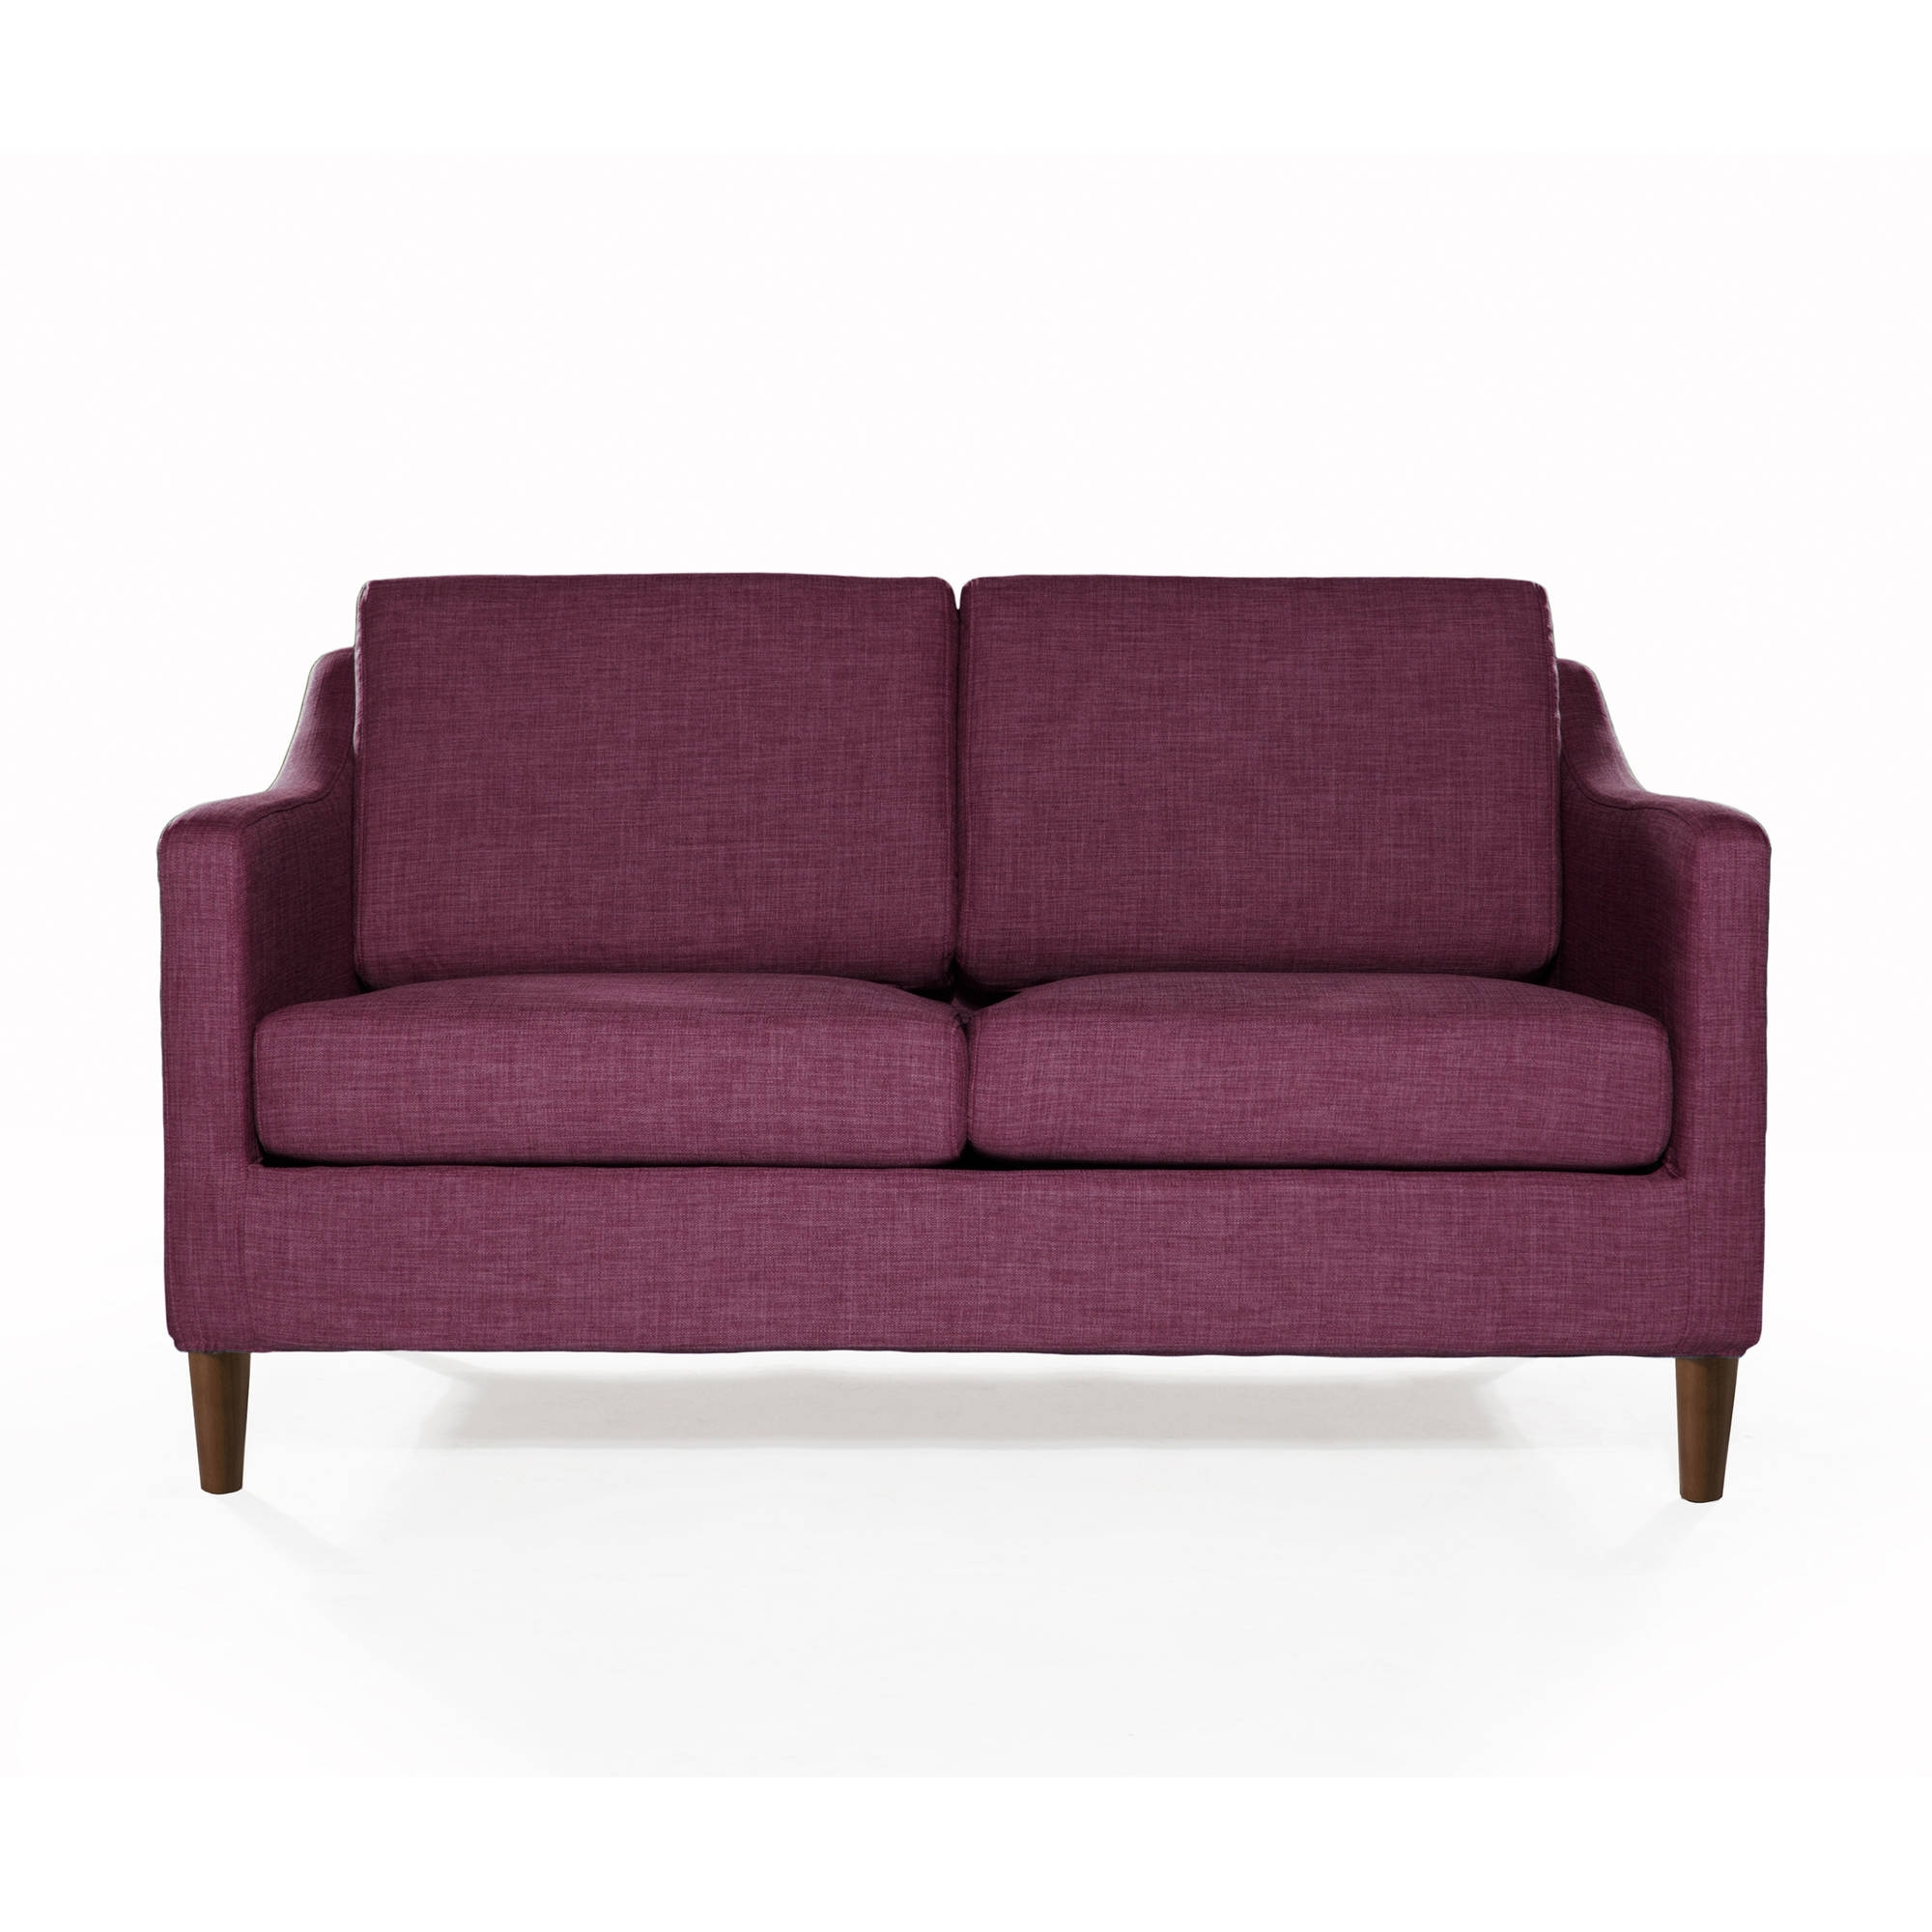 Sectional Sofas Under 600 Intended For Preferred Sectional Sofas – Walmart (View 11 of 15)